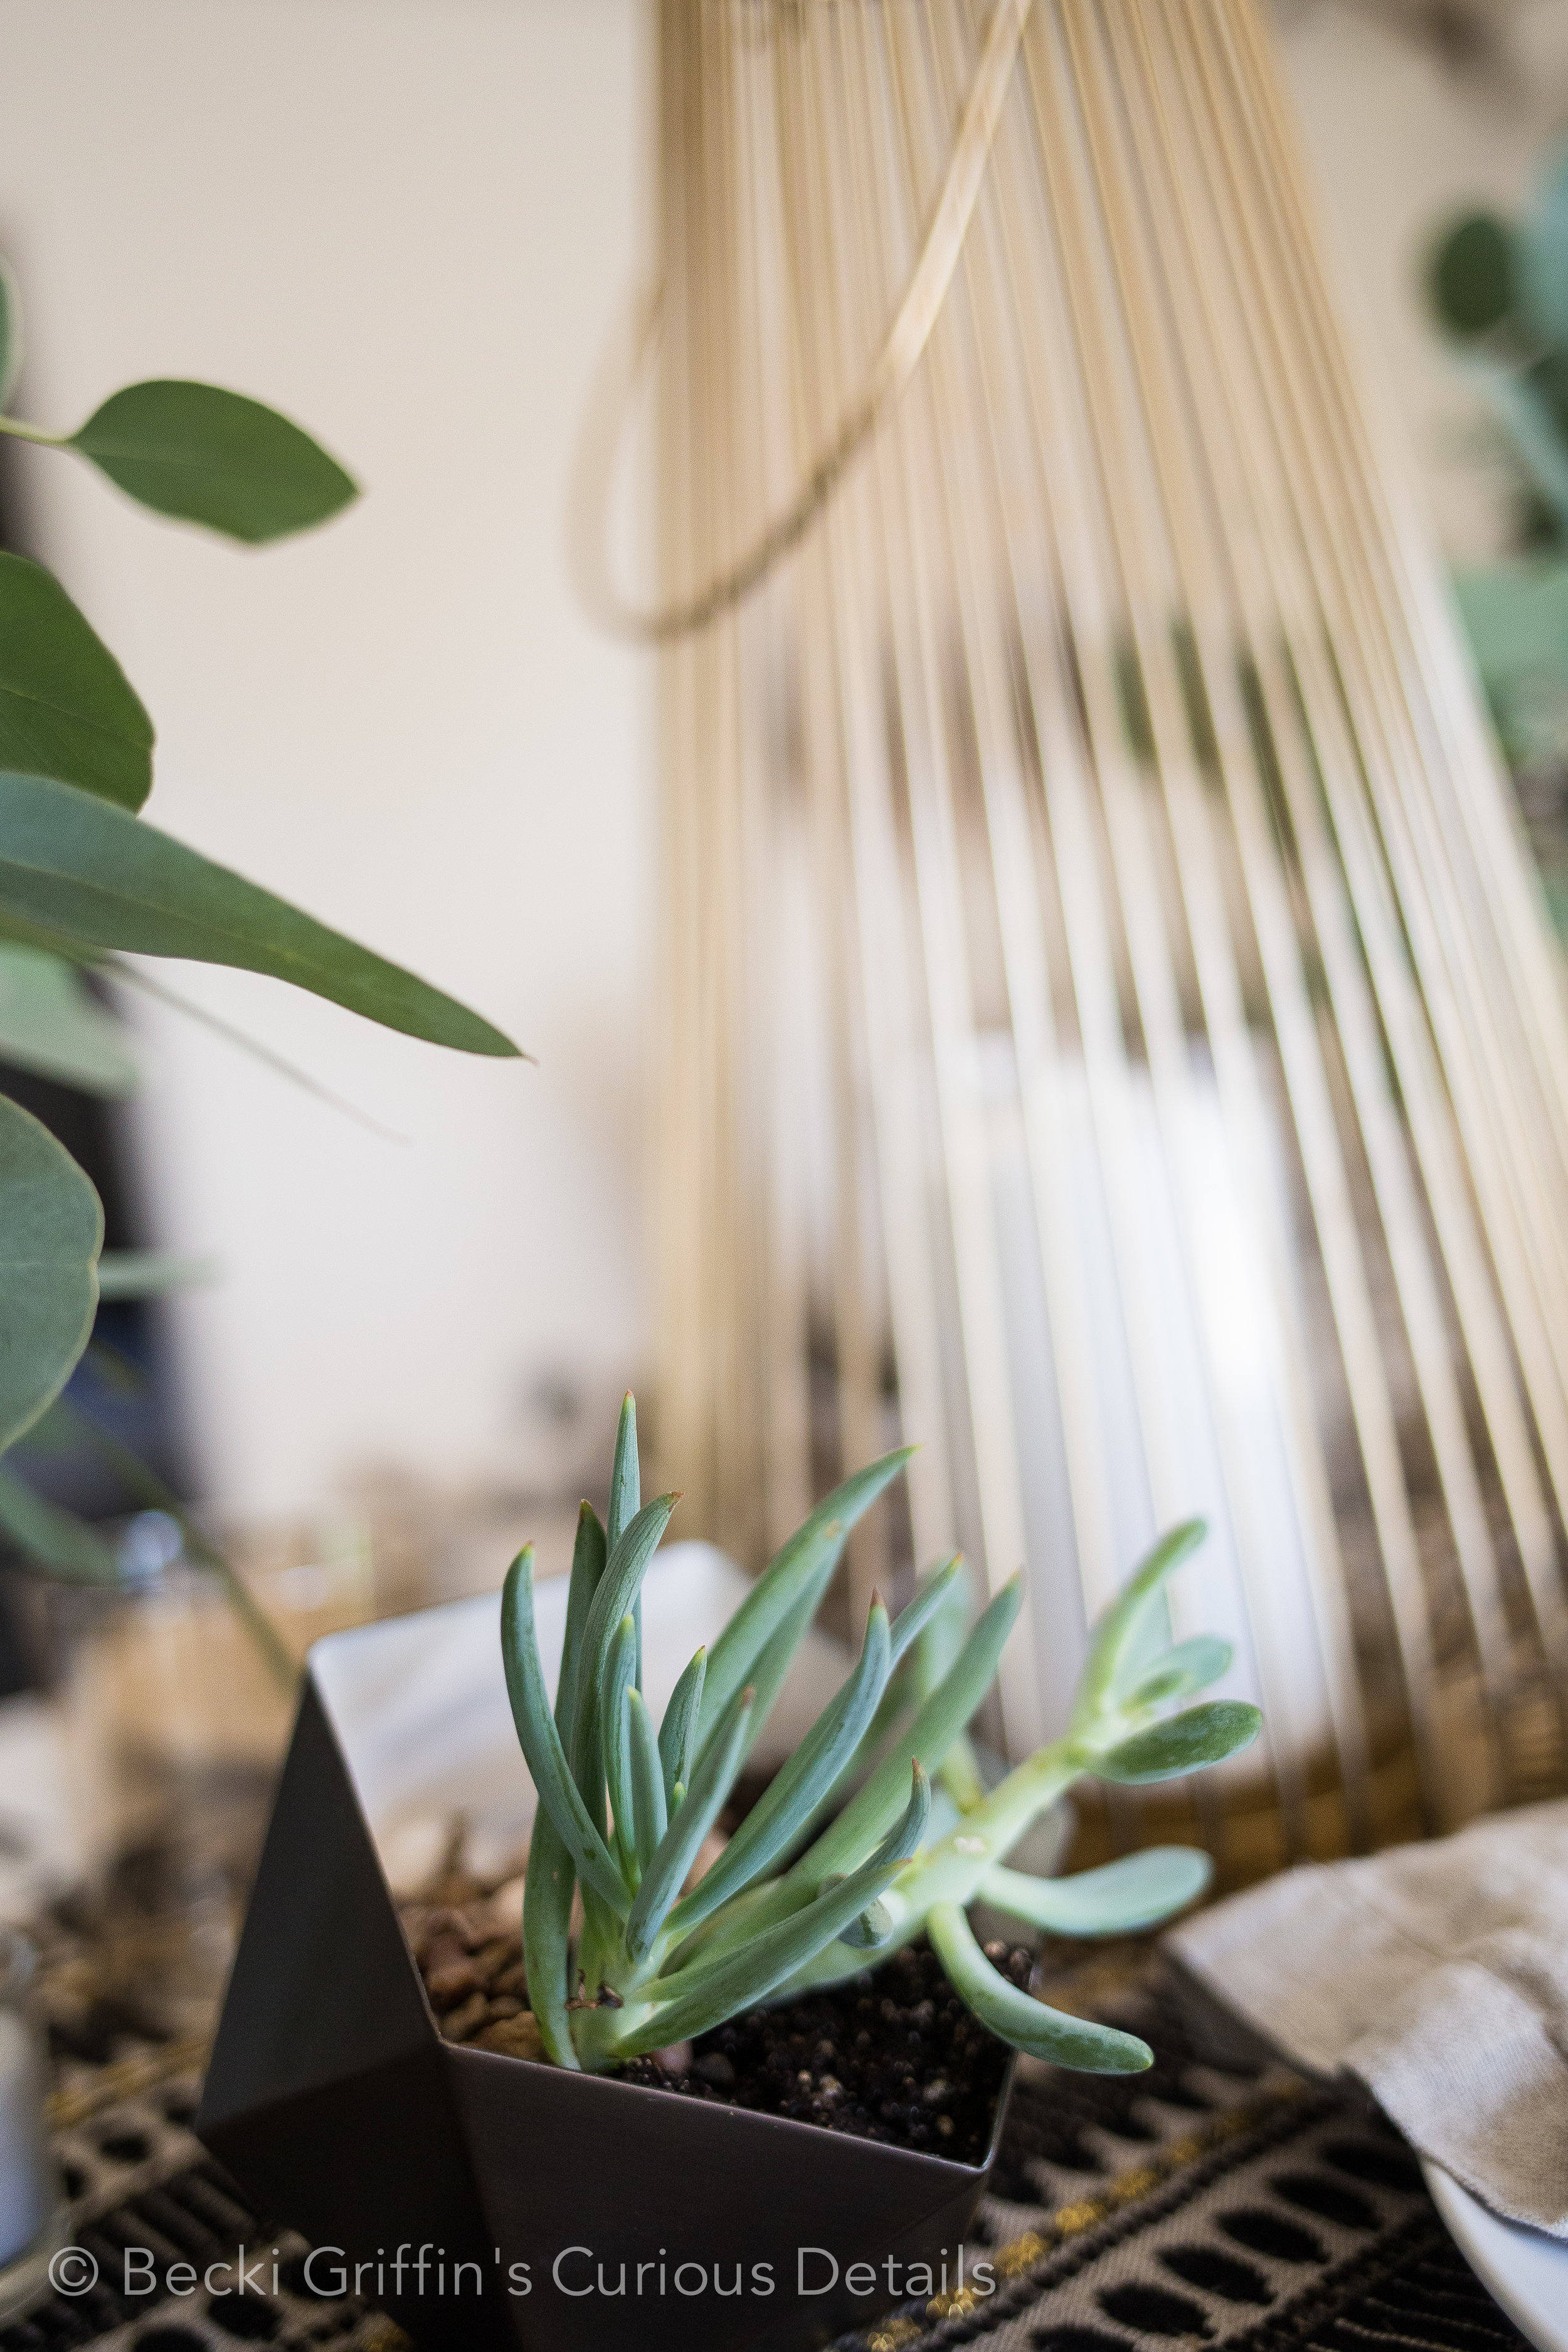 Becki Griffin's Curious Details|The Vintage Round Top